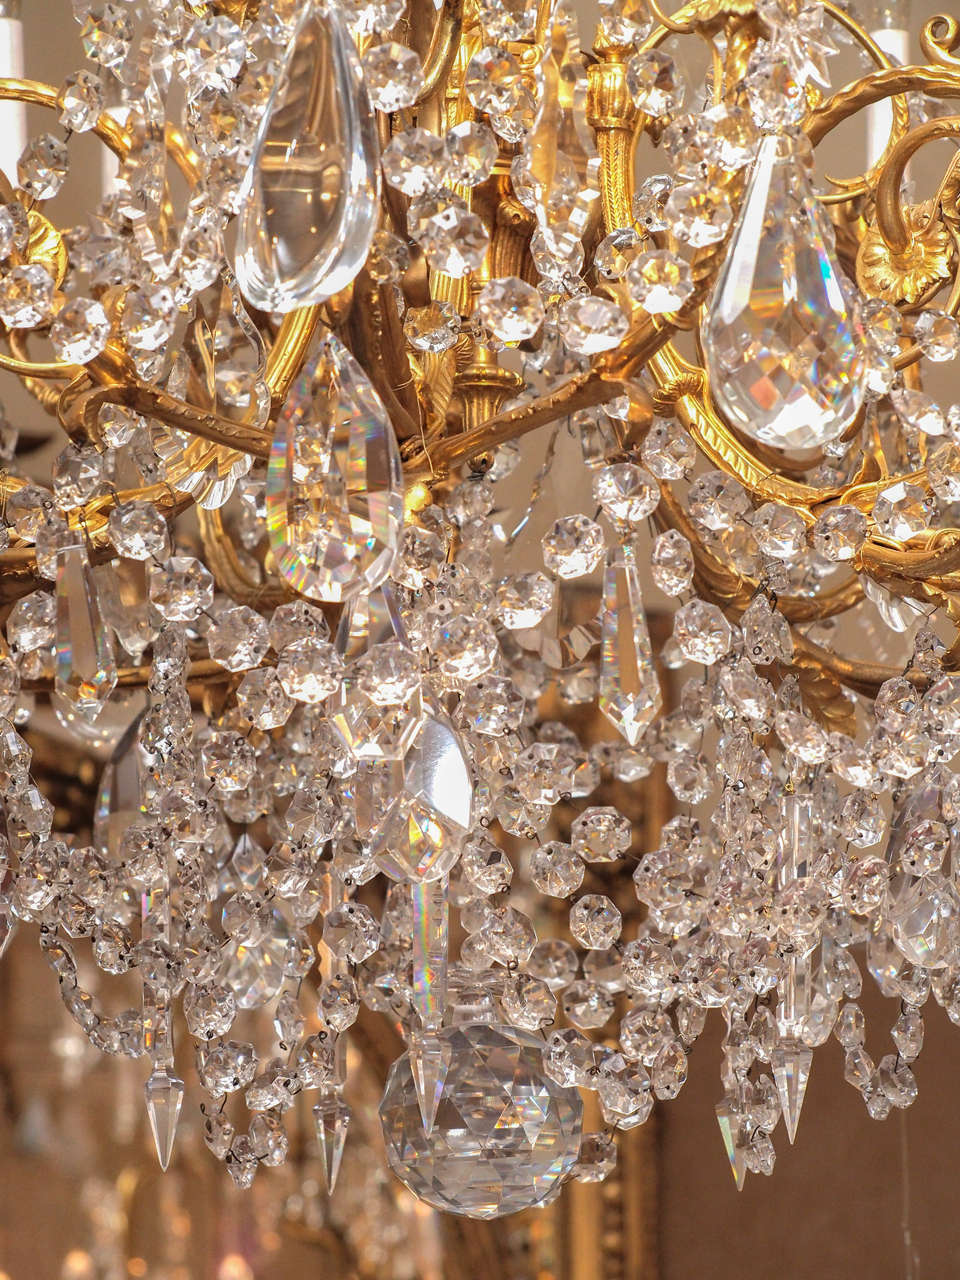 Antique French Baccarat Crystal and Bronze D'ore 24 Light Chandelier circa 1890 7